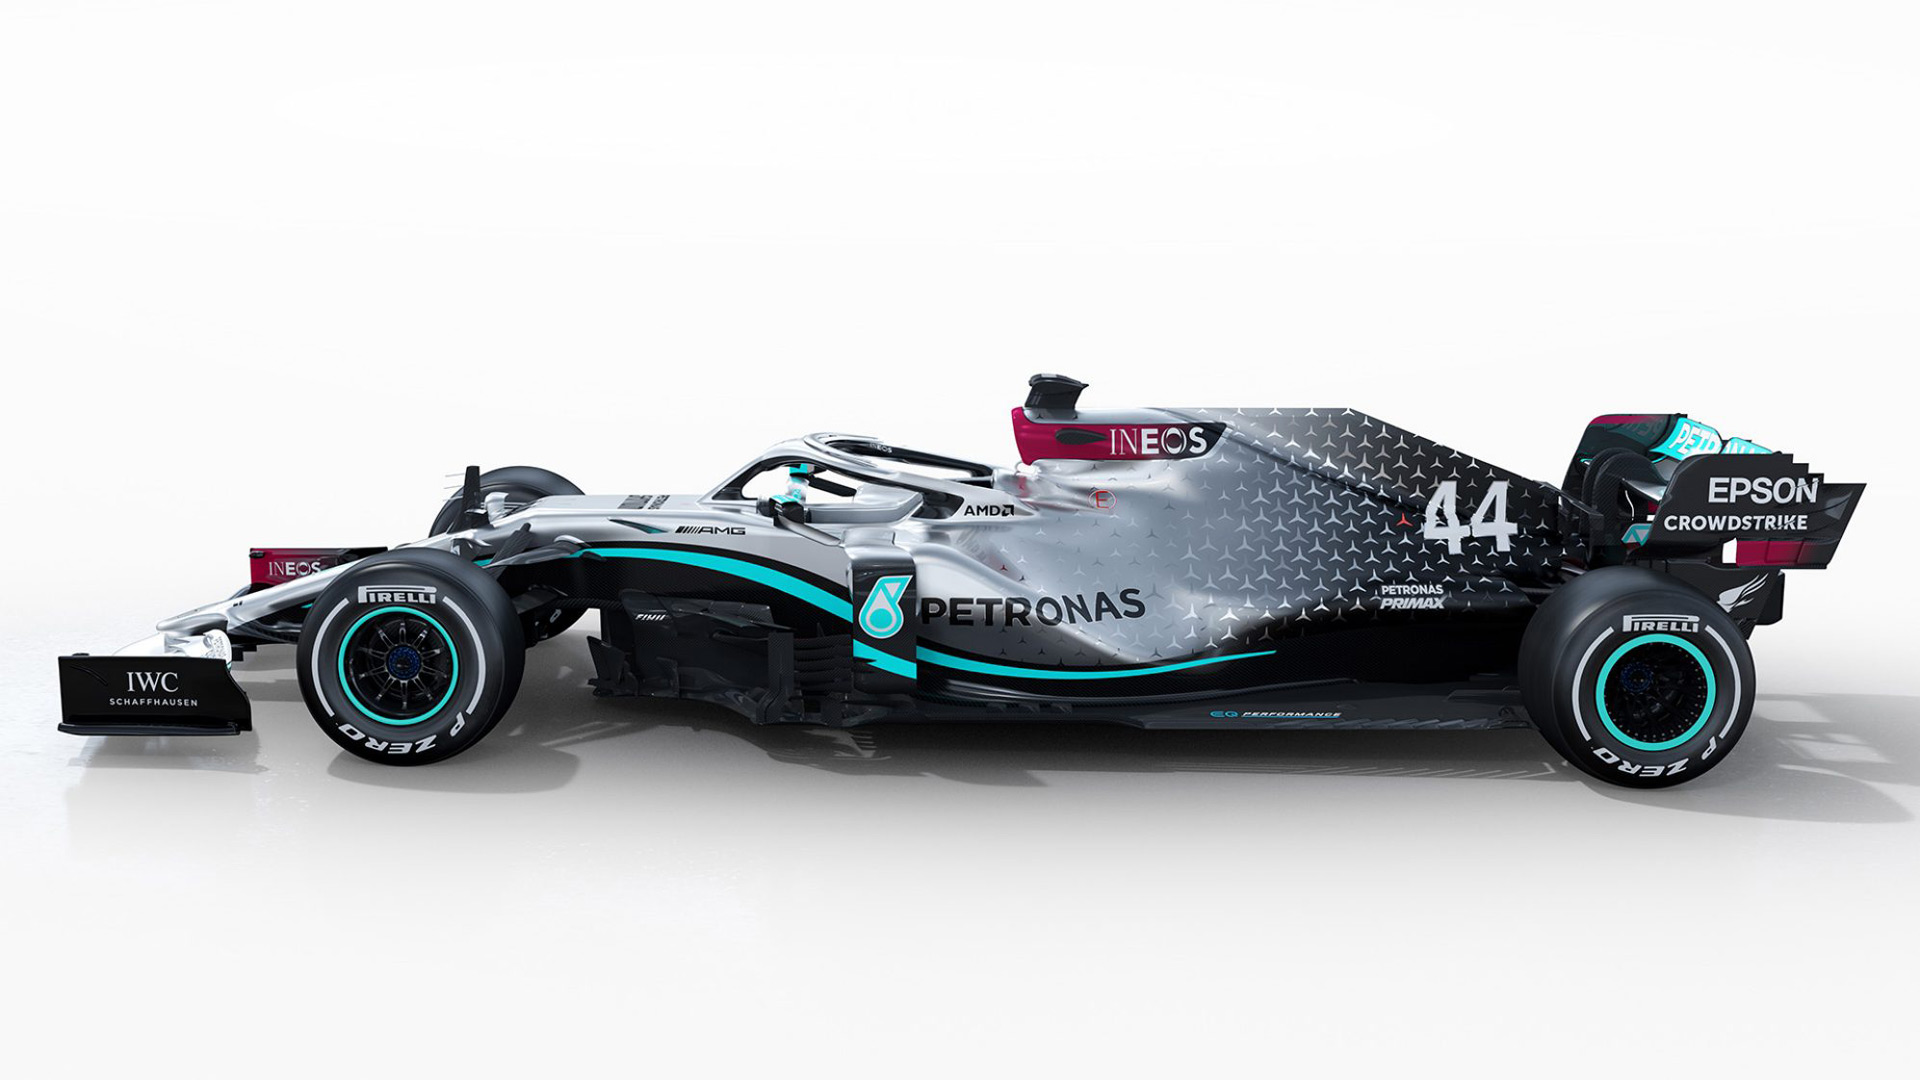 Mercedes AMG reveals its race car for the 2020 F1 season 1920x1080